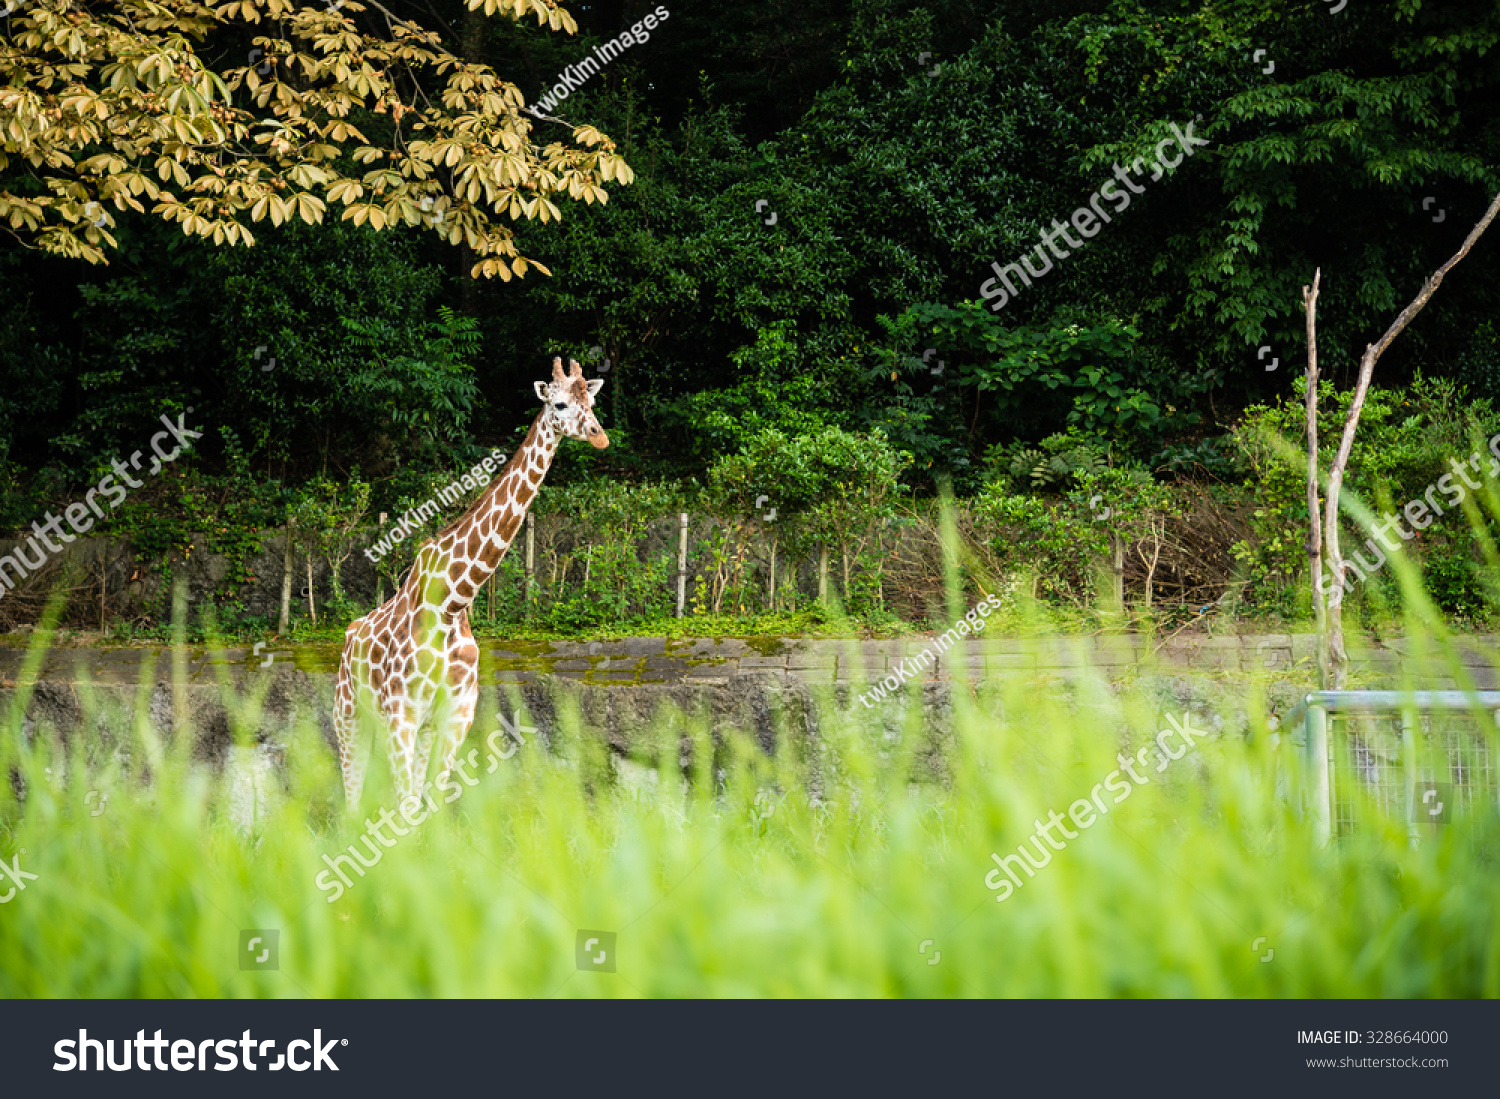 Nagoya Japan August 15 2015 Reticulated Stock Photo ...